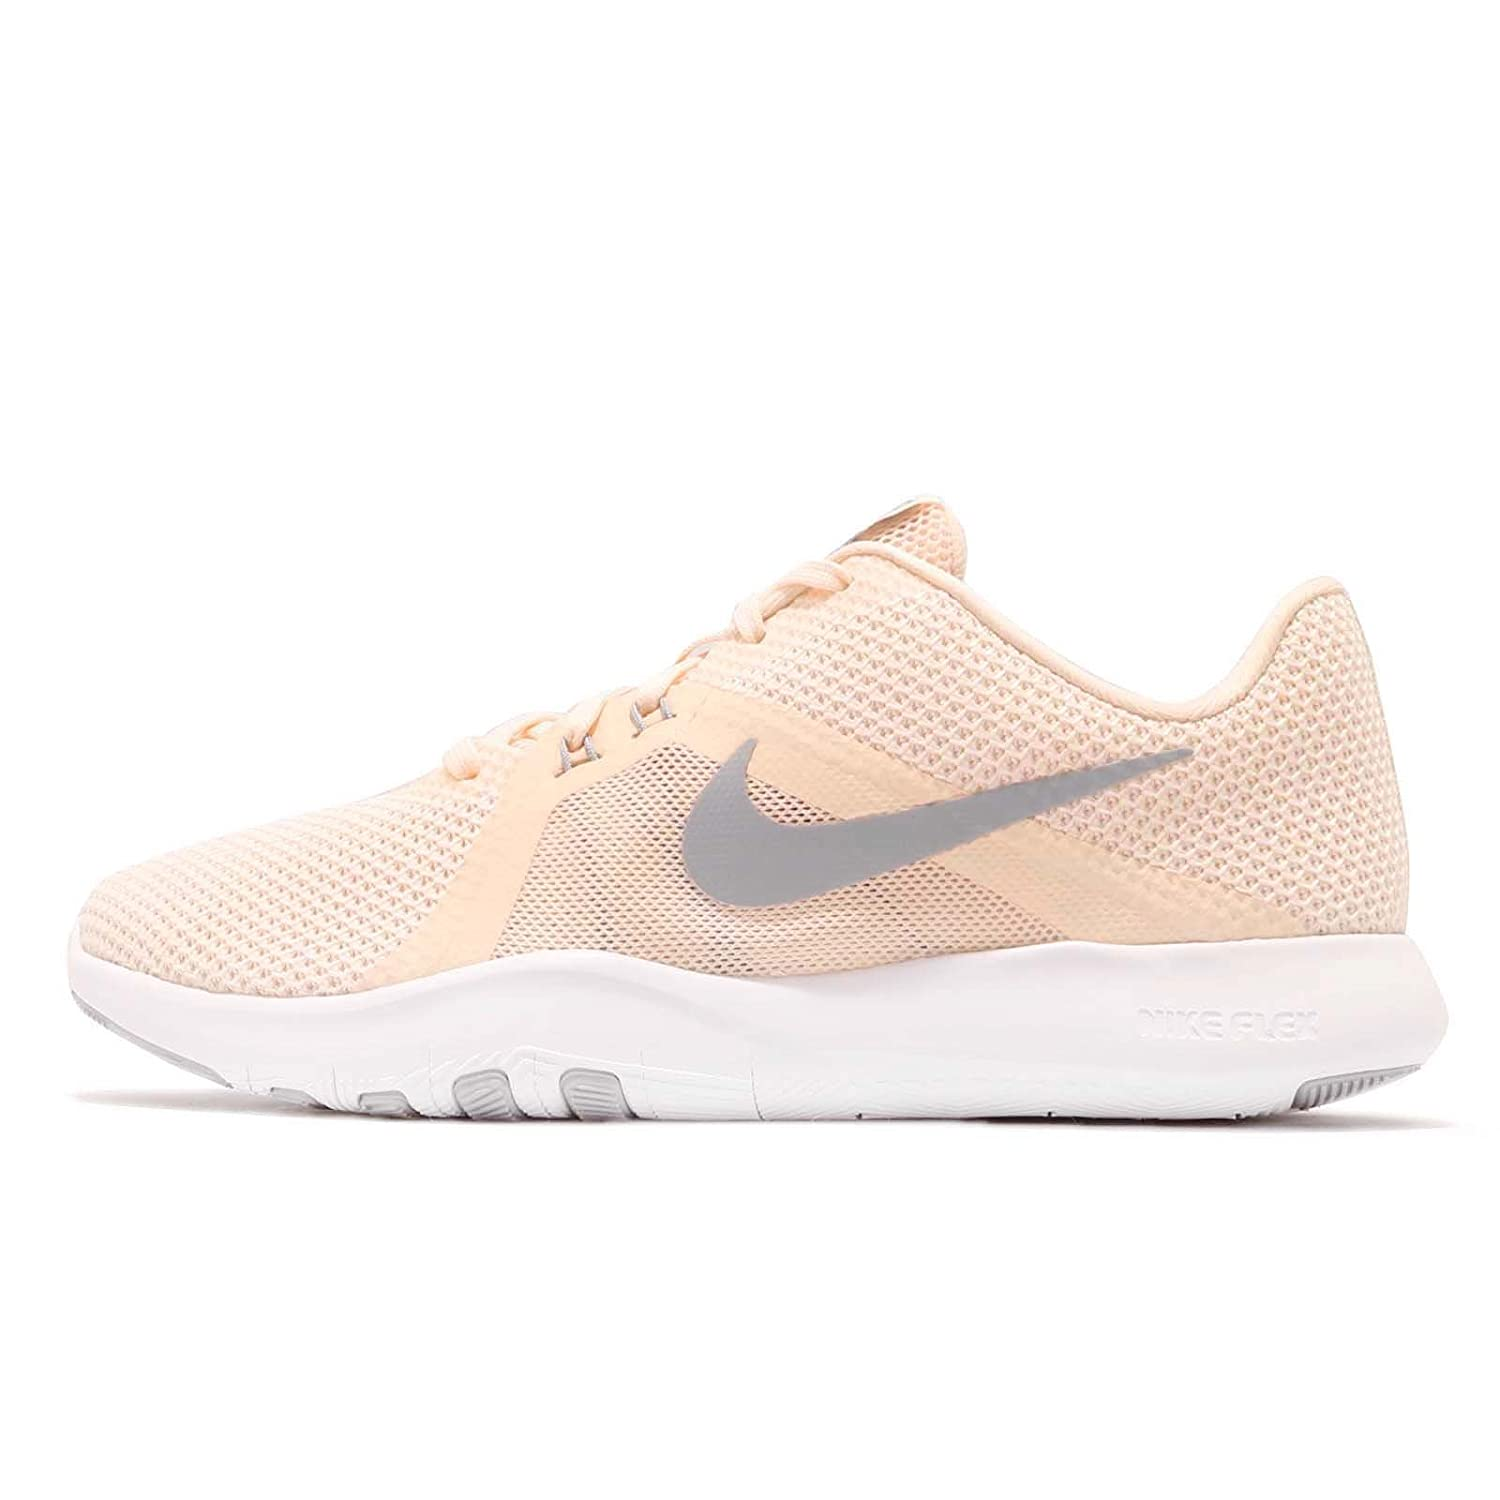 14d37e111ba NIKE Women s Flex 8 Cross Trainer B0789SQ6R8 8.5 8.5 8.5 B(M) US ...